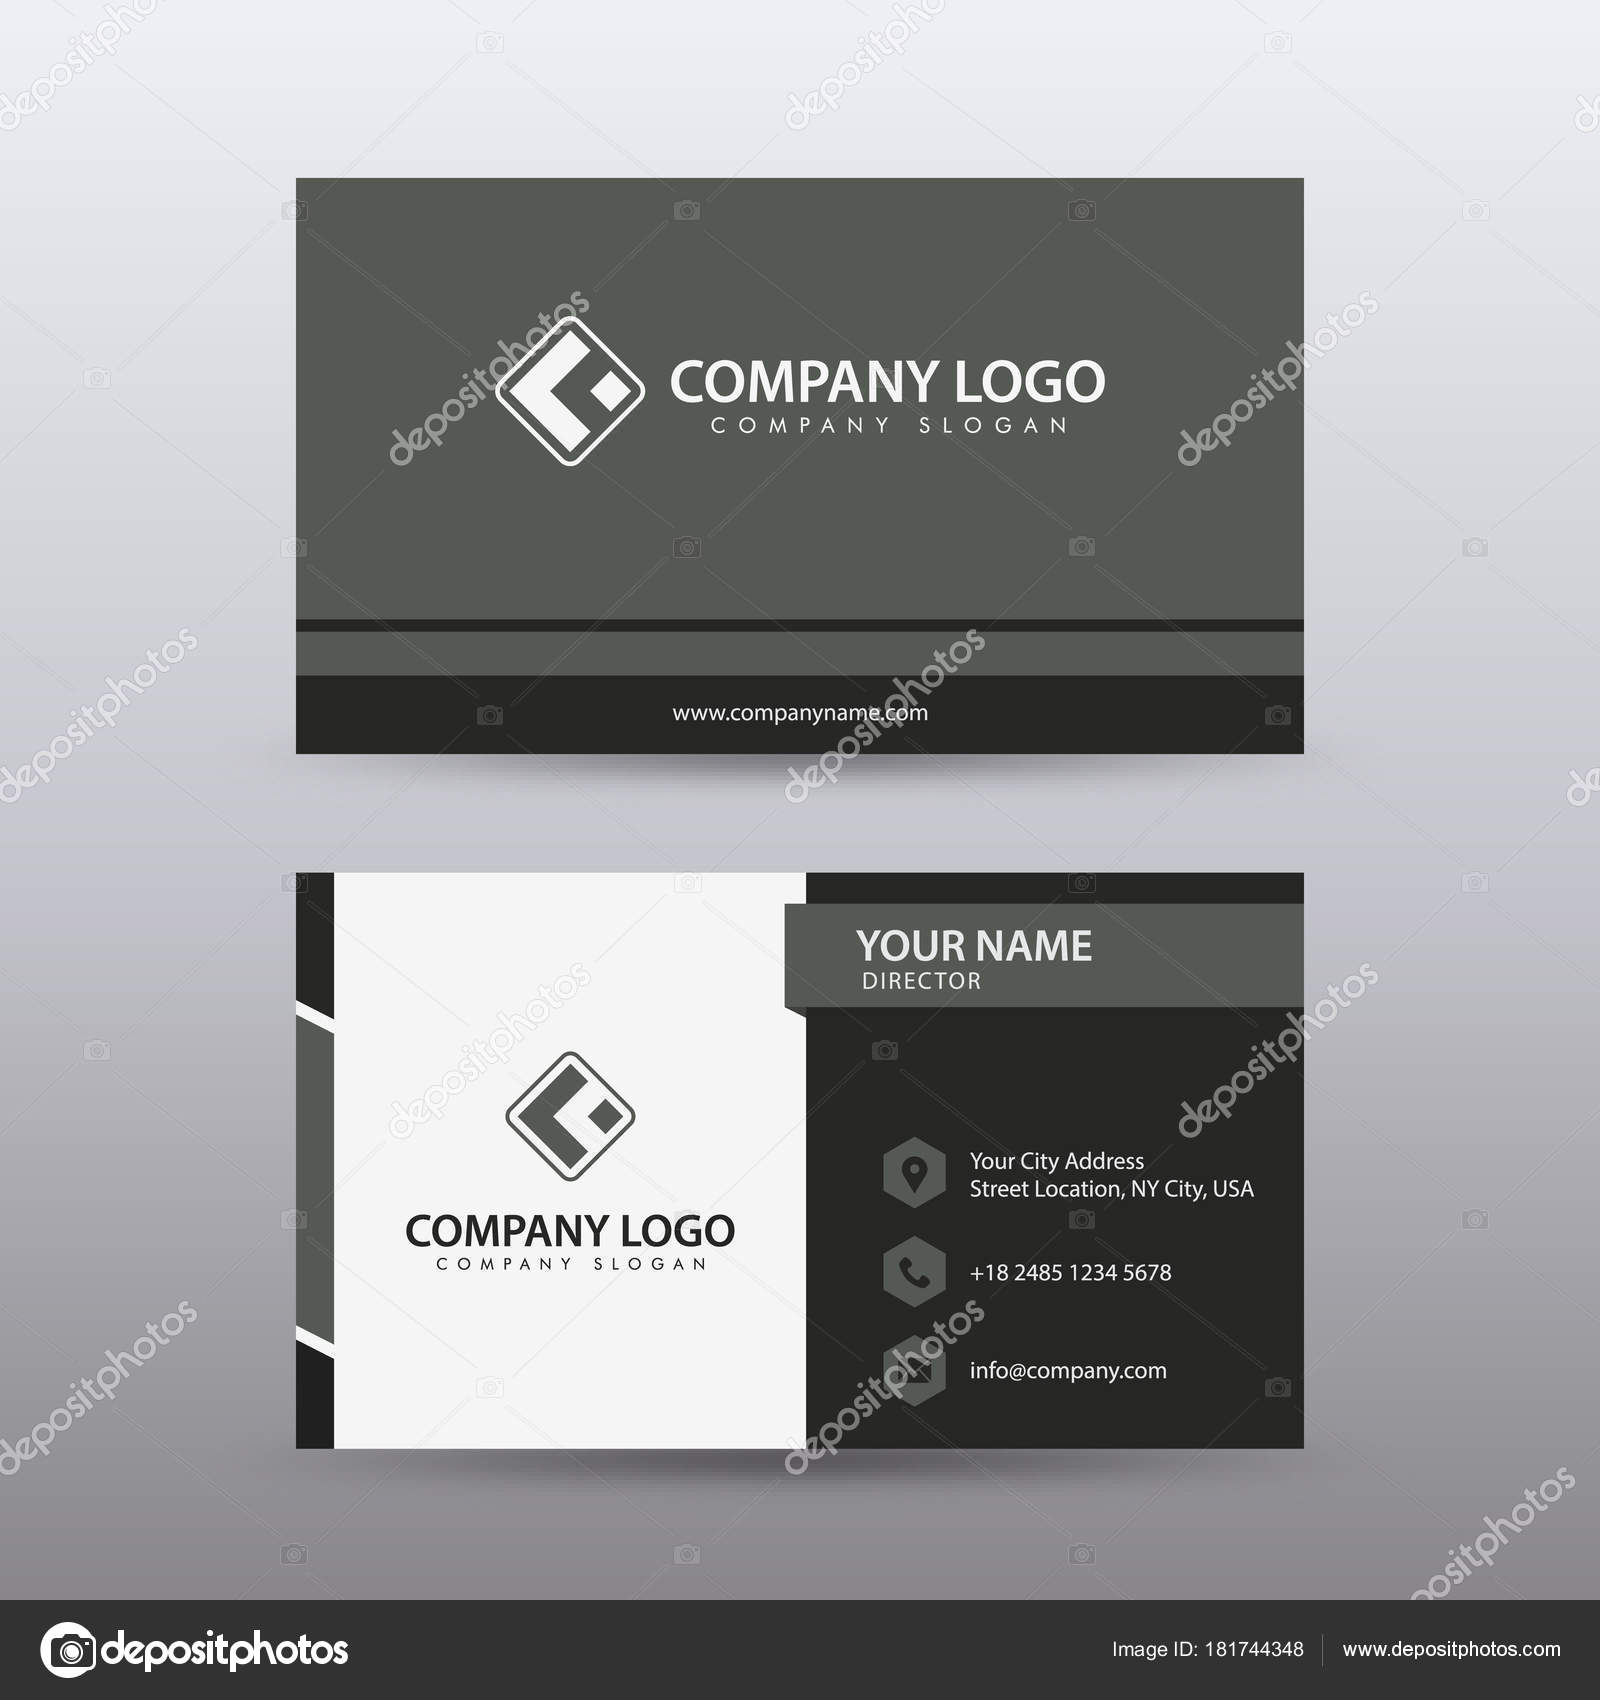 Modern creative and clean business card template with red black modern creative and clean business card template with red black color stock vector accmission Choice Image